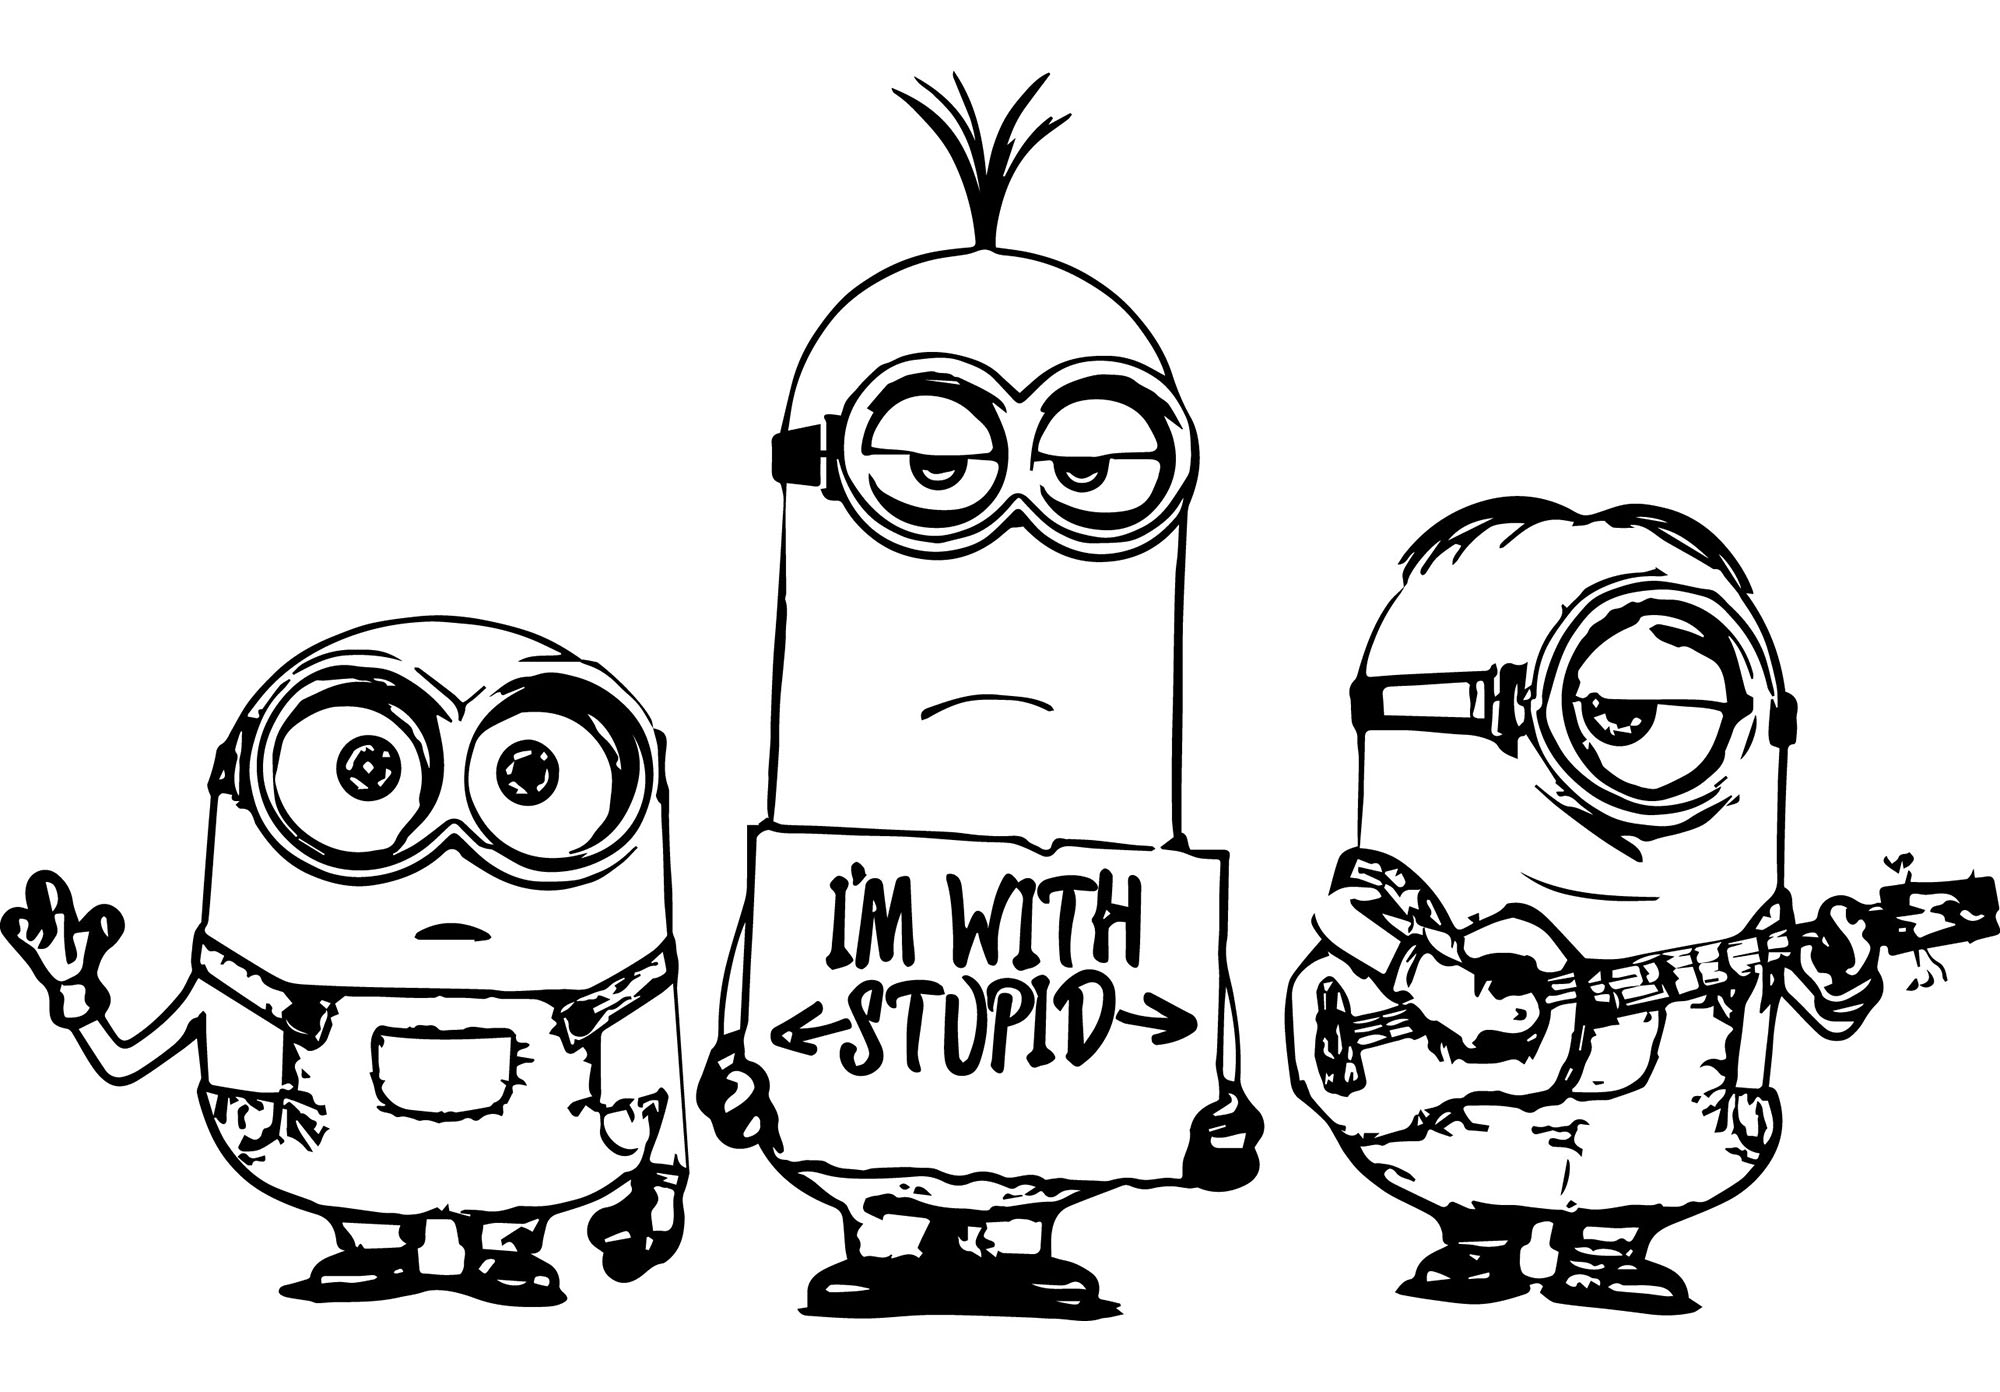 Knowledge Minion Coloring Pages Multiple Minions Coloring Pages Robot - Urakan